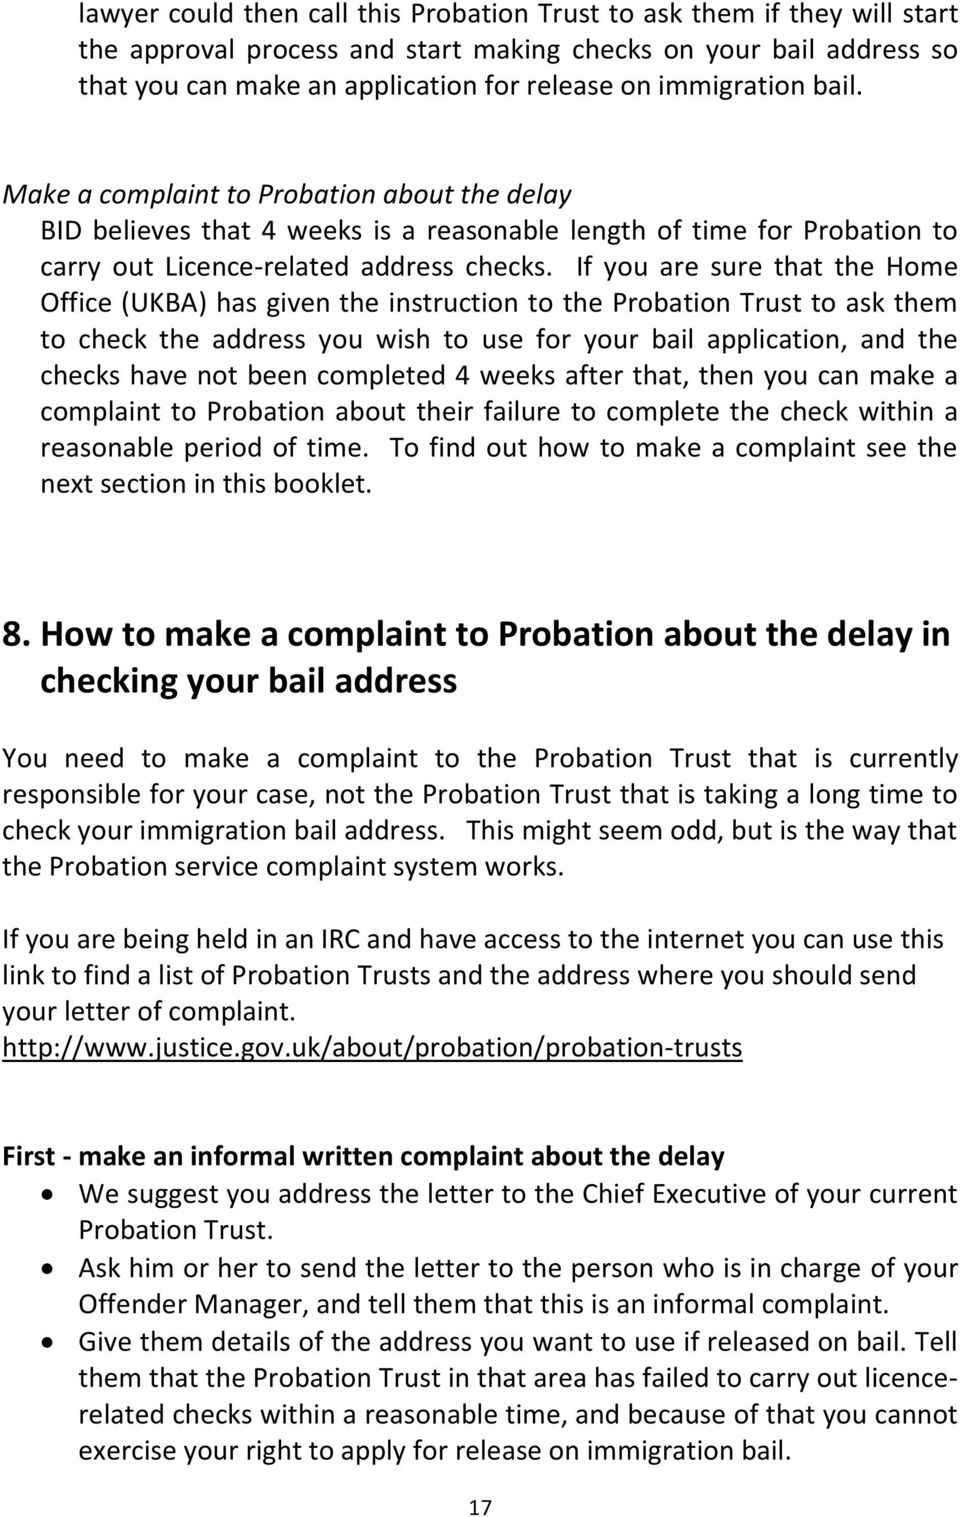 If you are sure that the Home Office (UKBA) has given the instruction to the Probation Trust to ask them to check the address you wish to use for your bail application, and the checks have not been